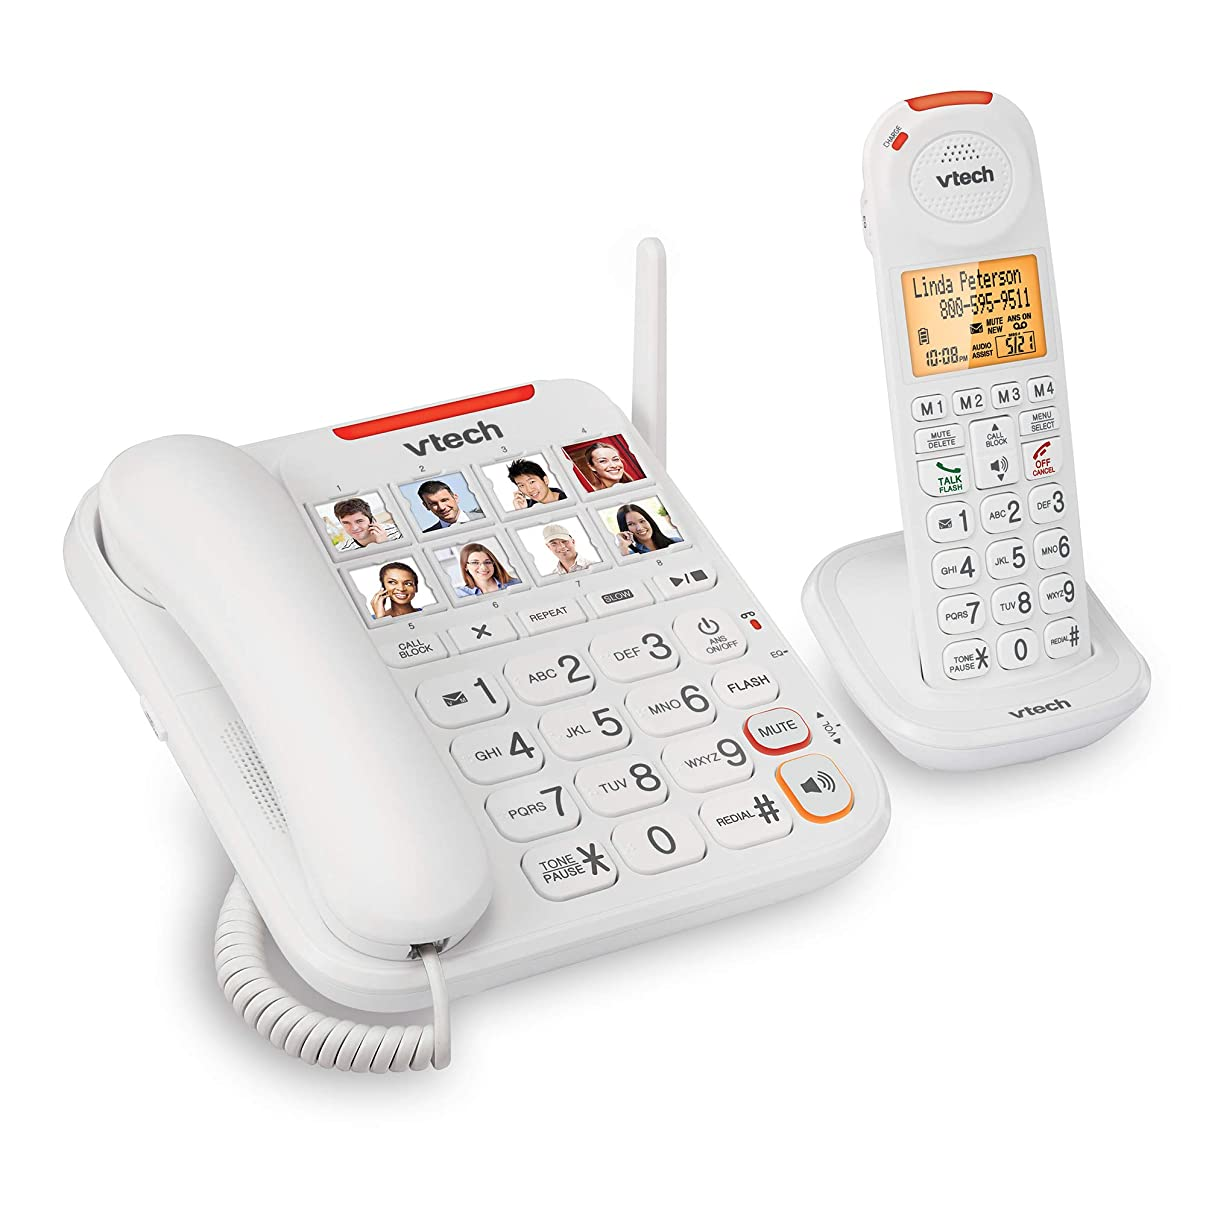 VTech SN5147 Amplified Corded/Cordless Senior Phone System with 90dB Extra-Loud Visual Ringer, Big Buttons & Large Display